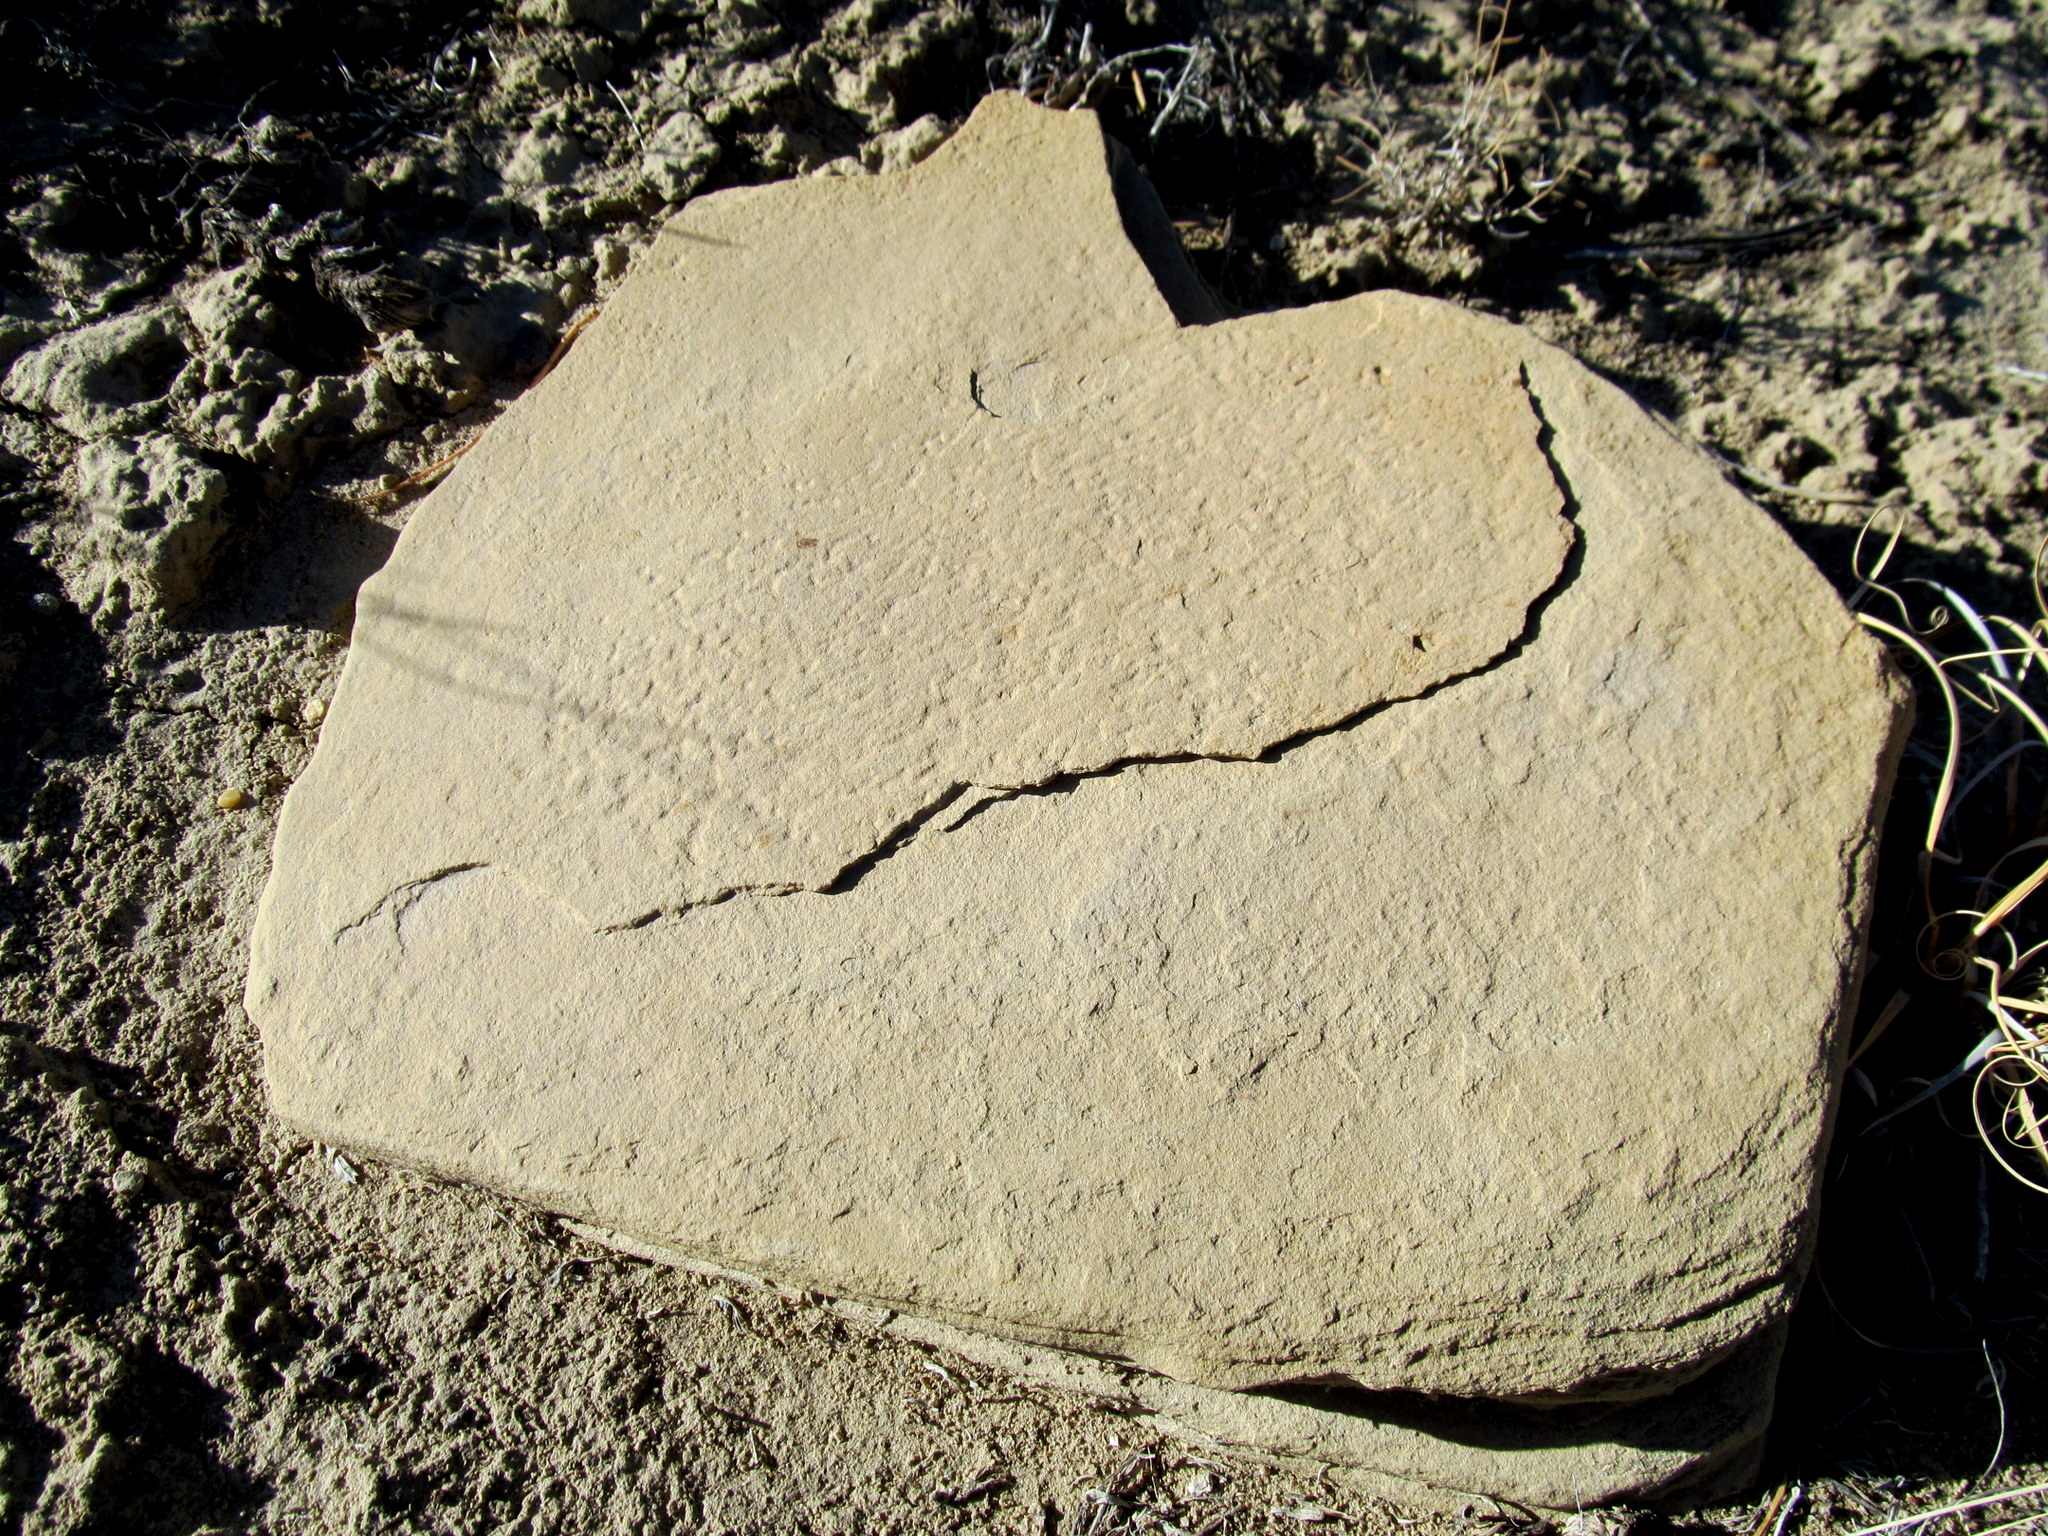 Photo: Pecked grinding stone along Ivie Creek